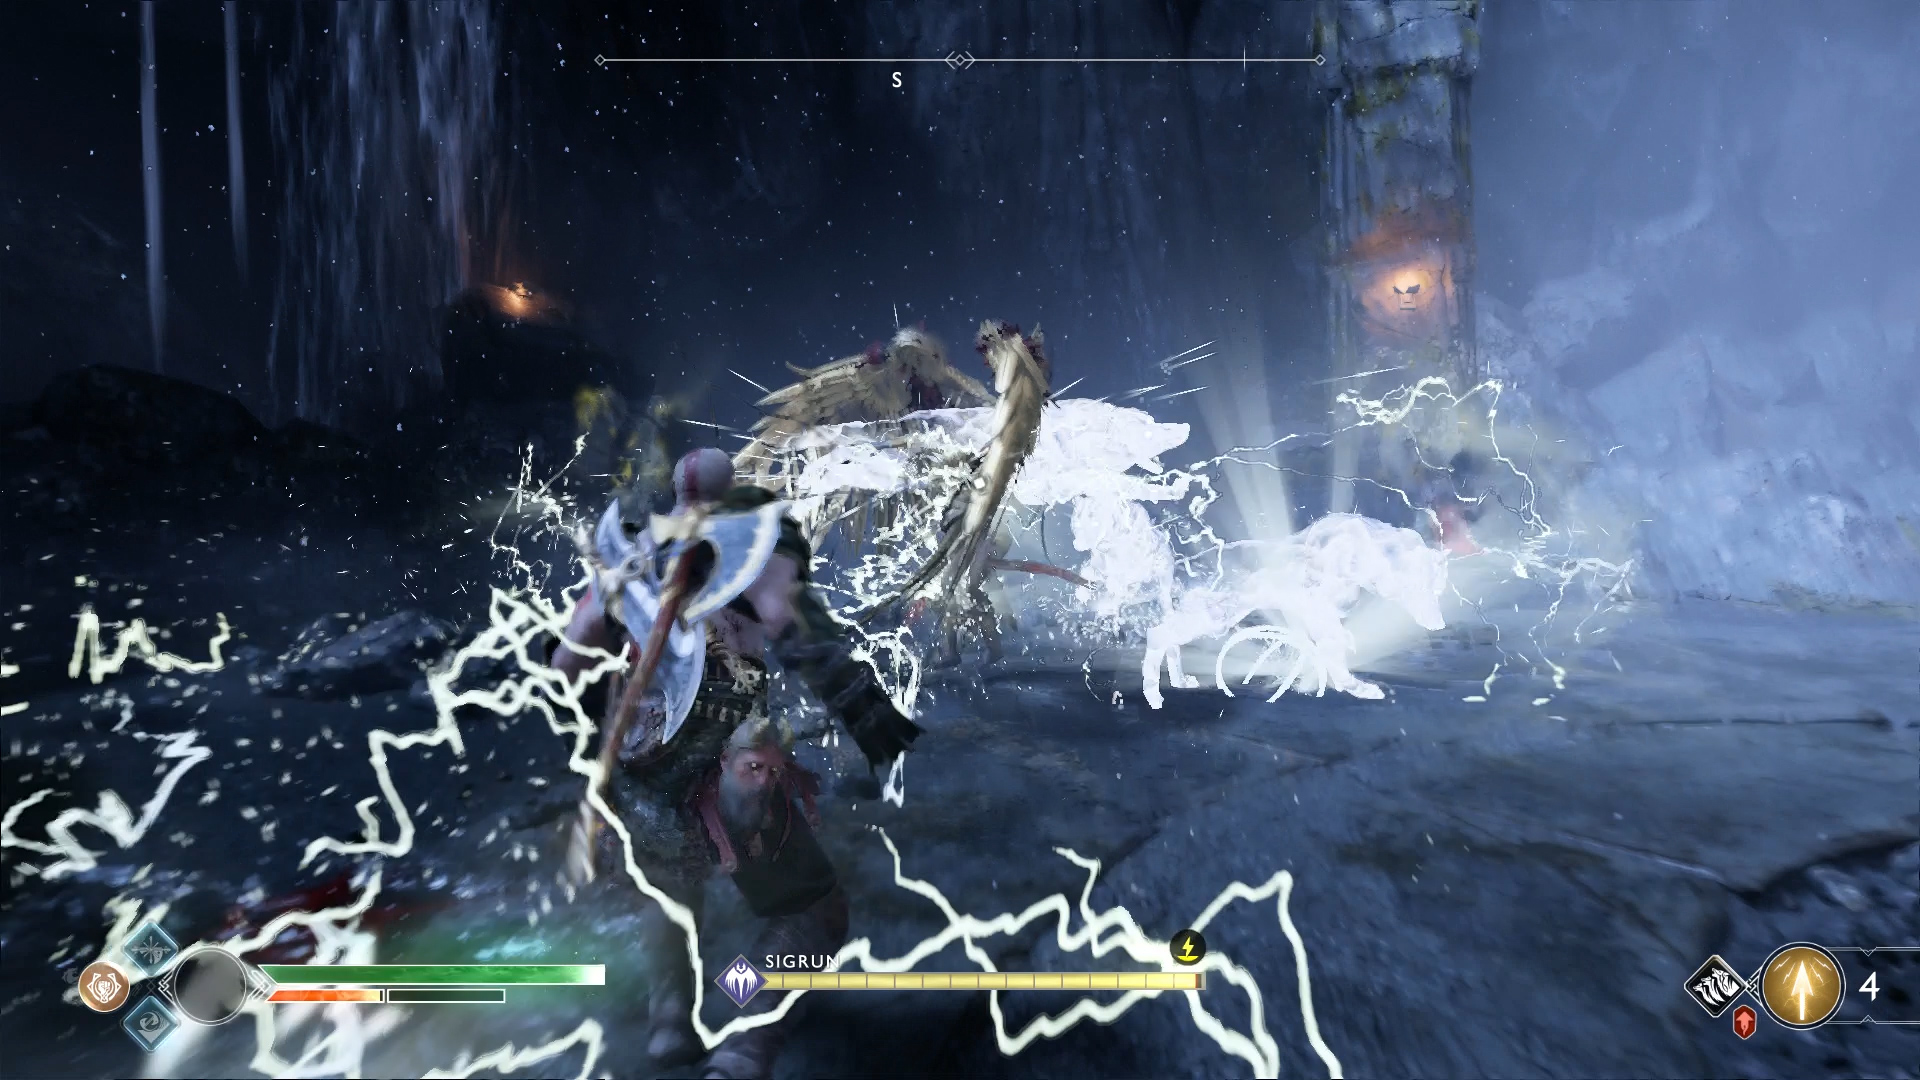 How to Defeat the Valkyrie Queen Sigrun in God of War   Shacknews